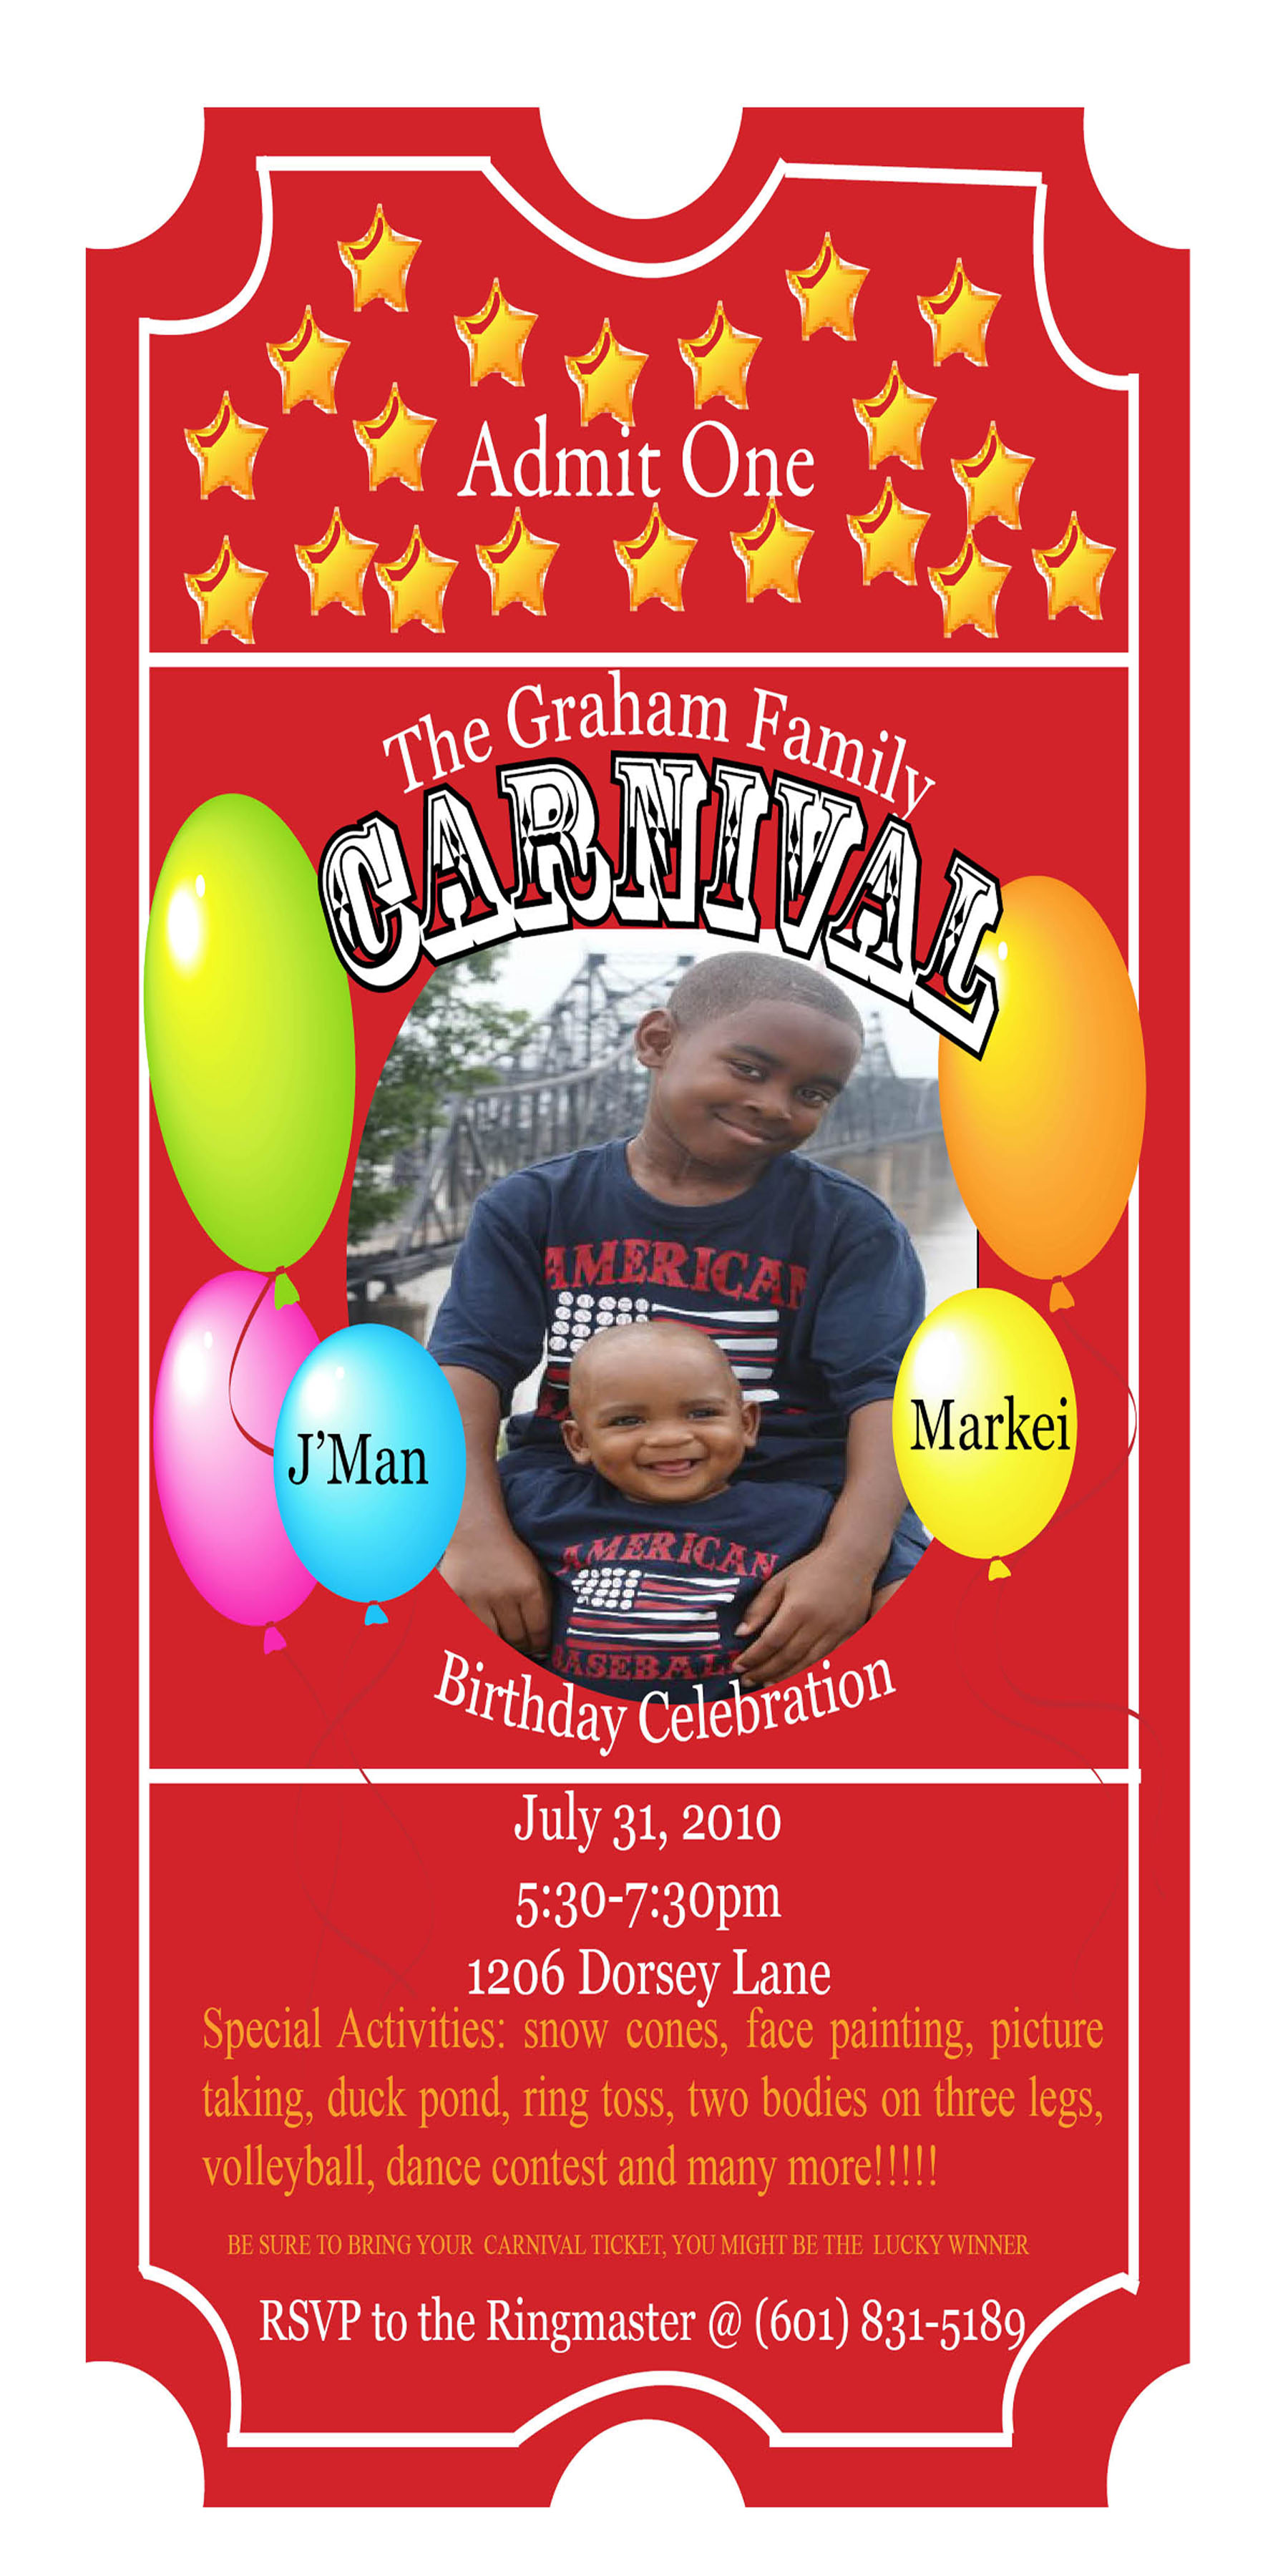 carnival themed birthday party invitation wording ; Carnival-Themed-Birthday-Party-Invitation-Templates-combined-with-your-creativity-will-make-this-looks-awesome-2